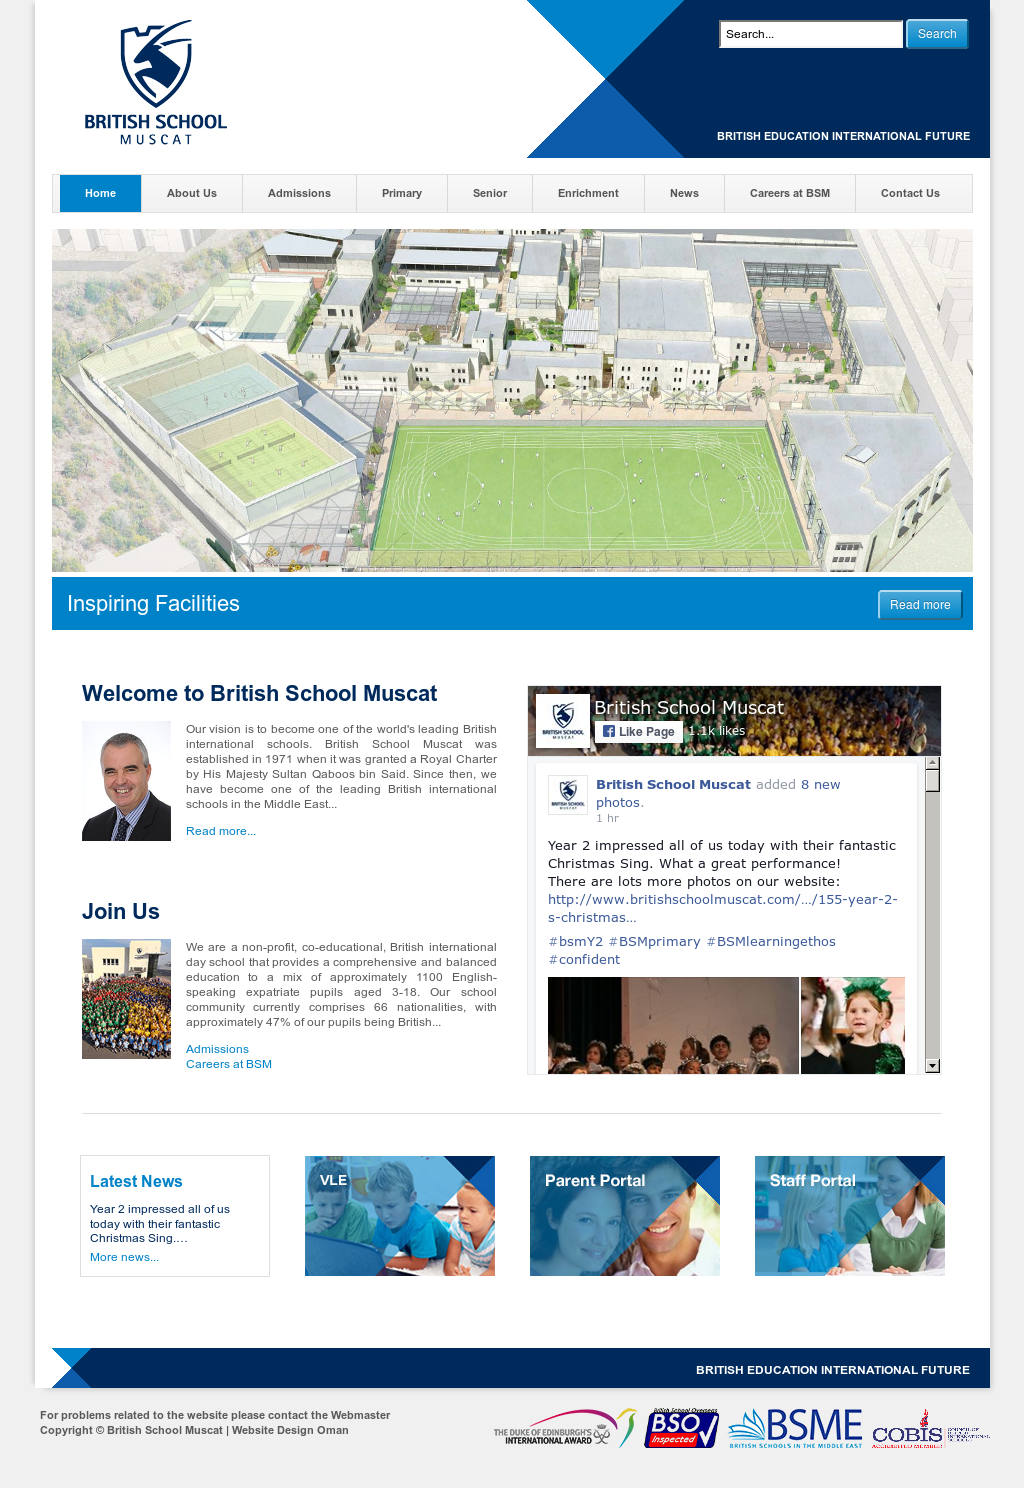 The British School - Muscat Competitors, Revenue and Employees